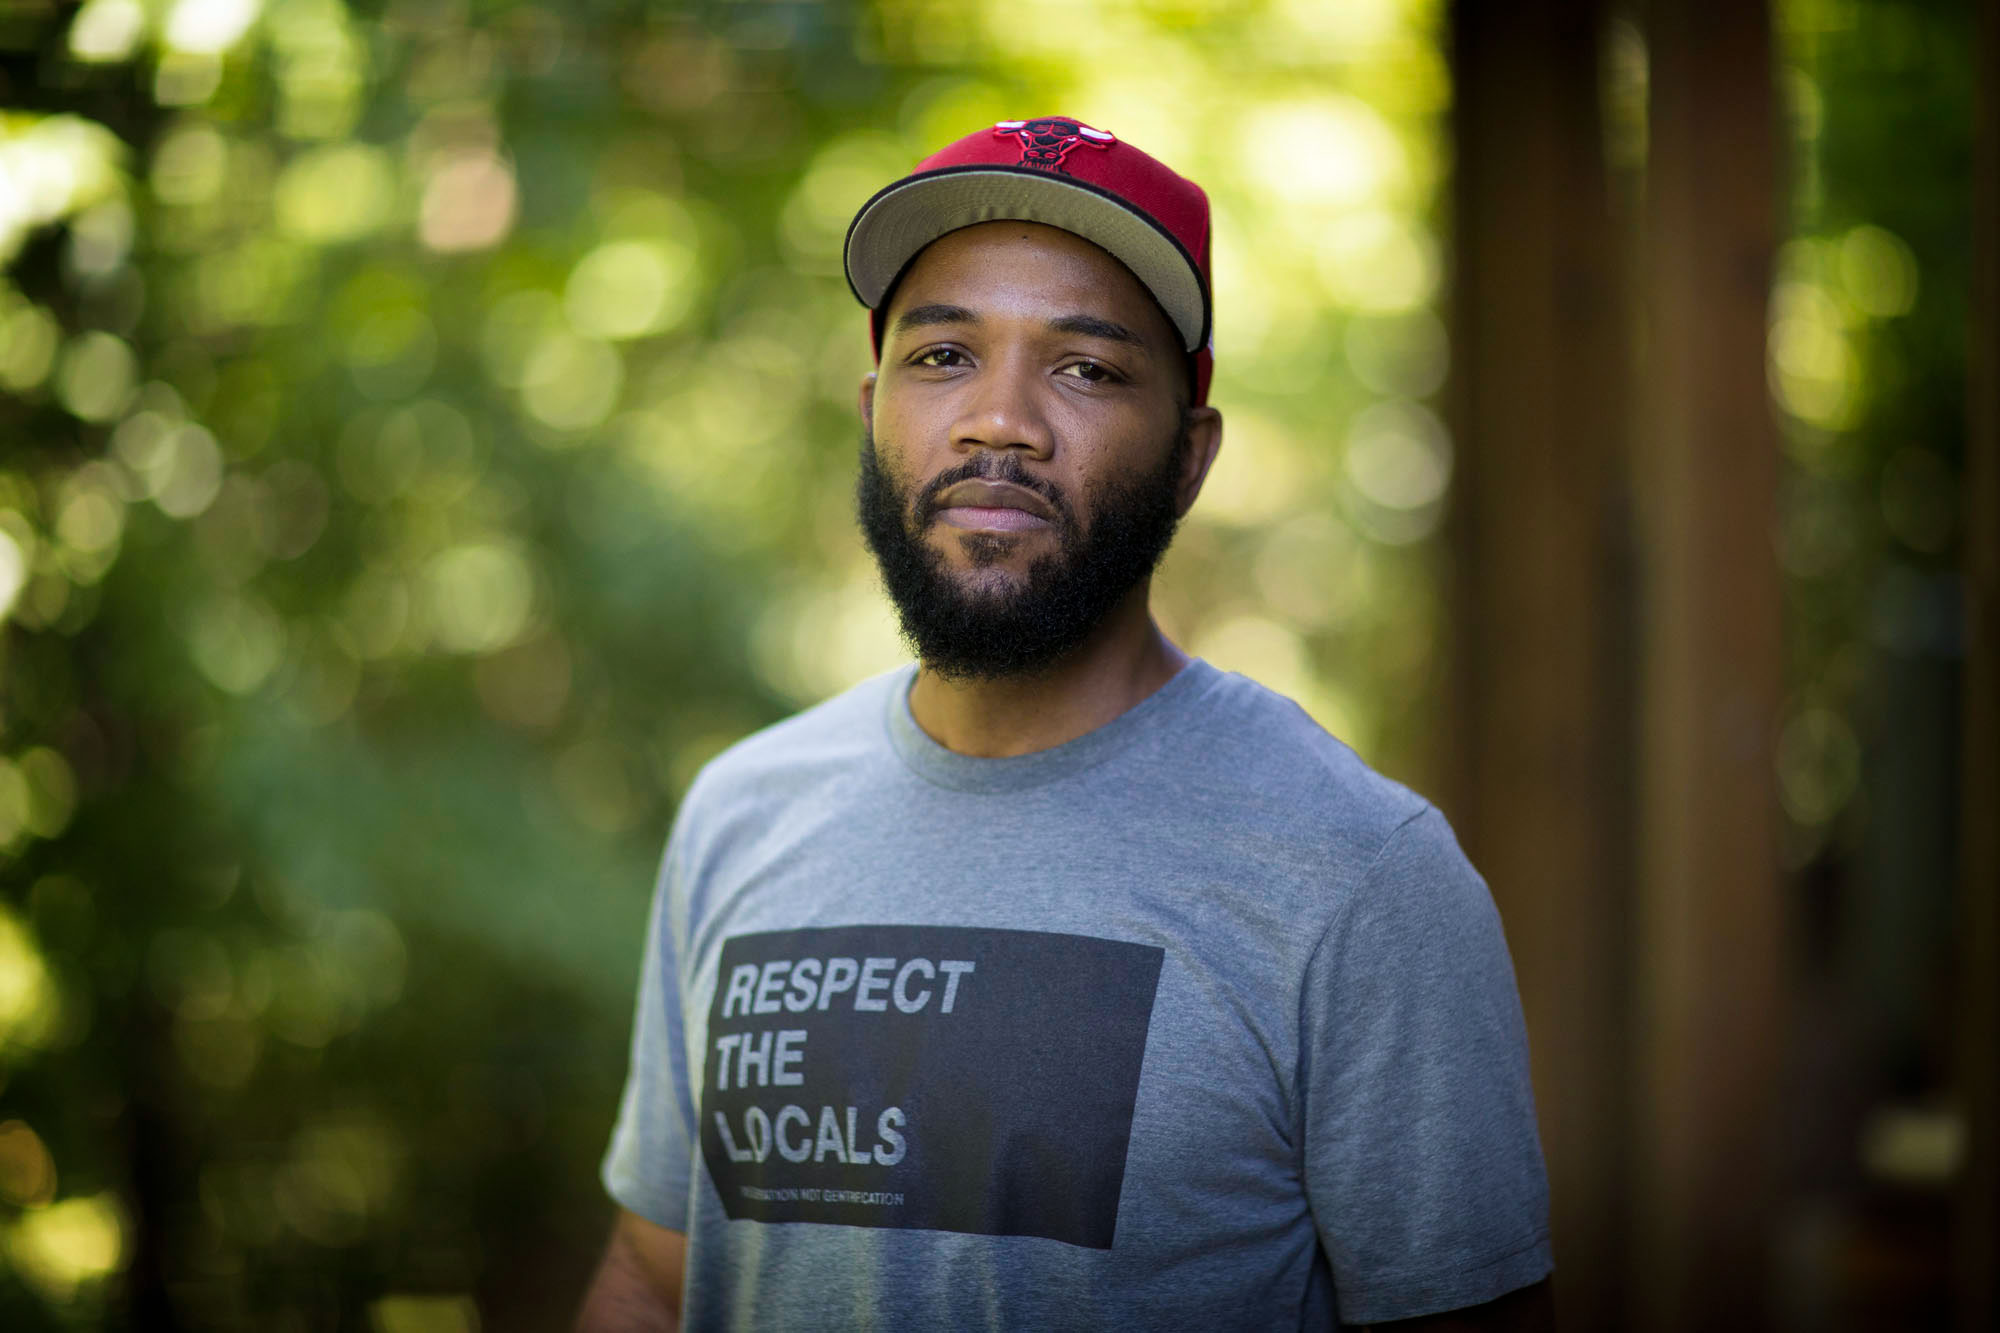 A.D. Carson joined UVA this summer as a professor of hip-hop and will begin teaching this fall.